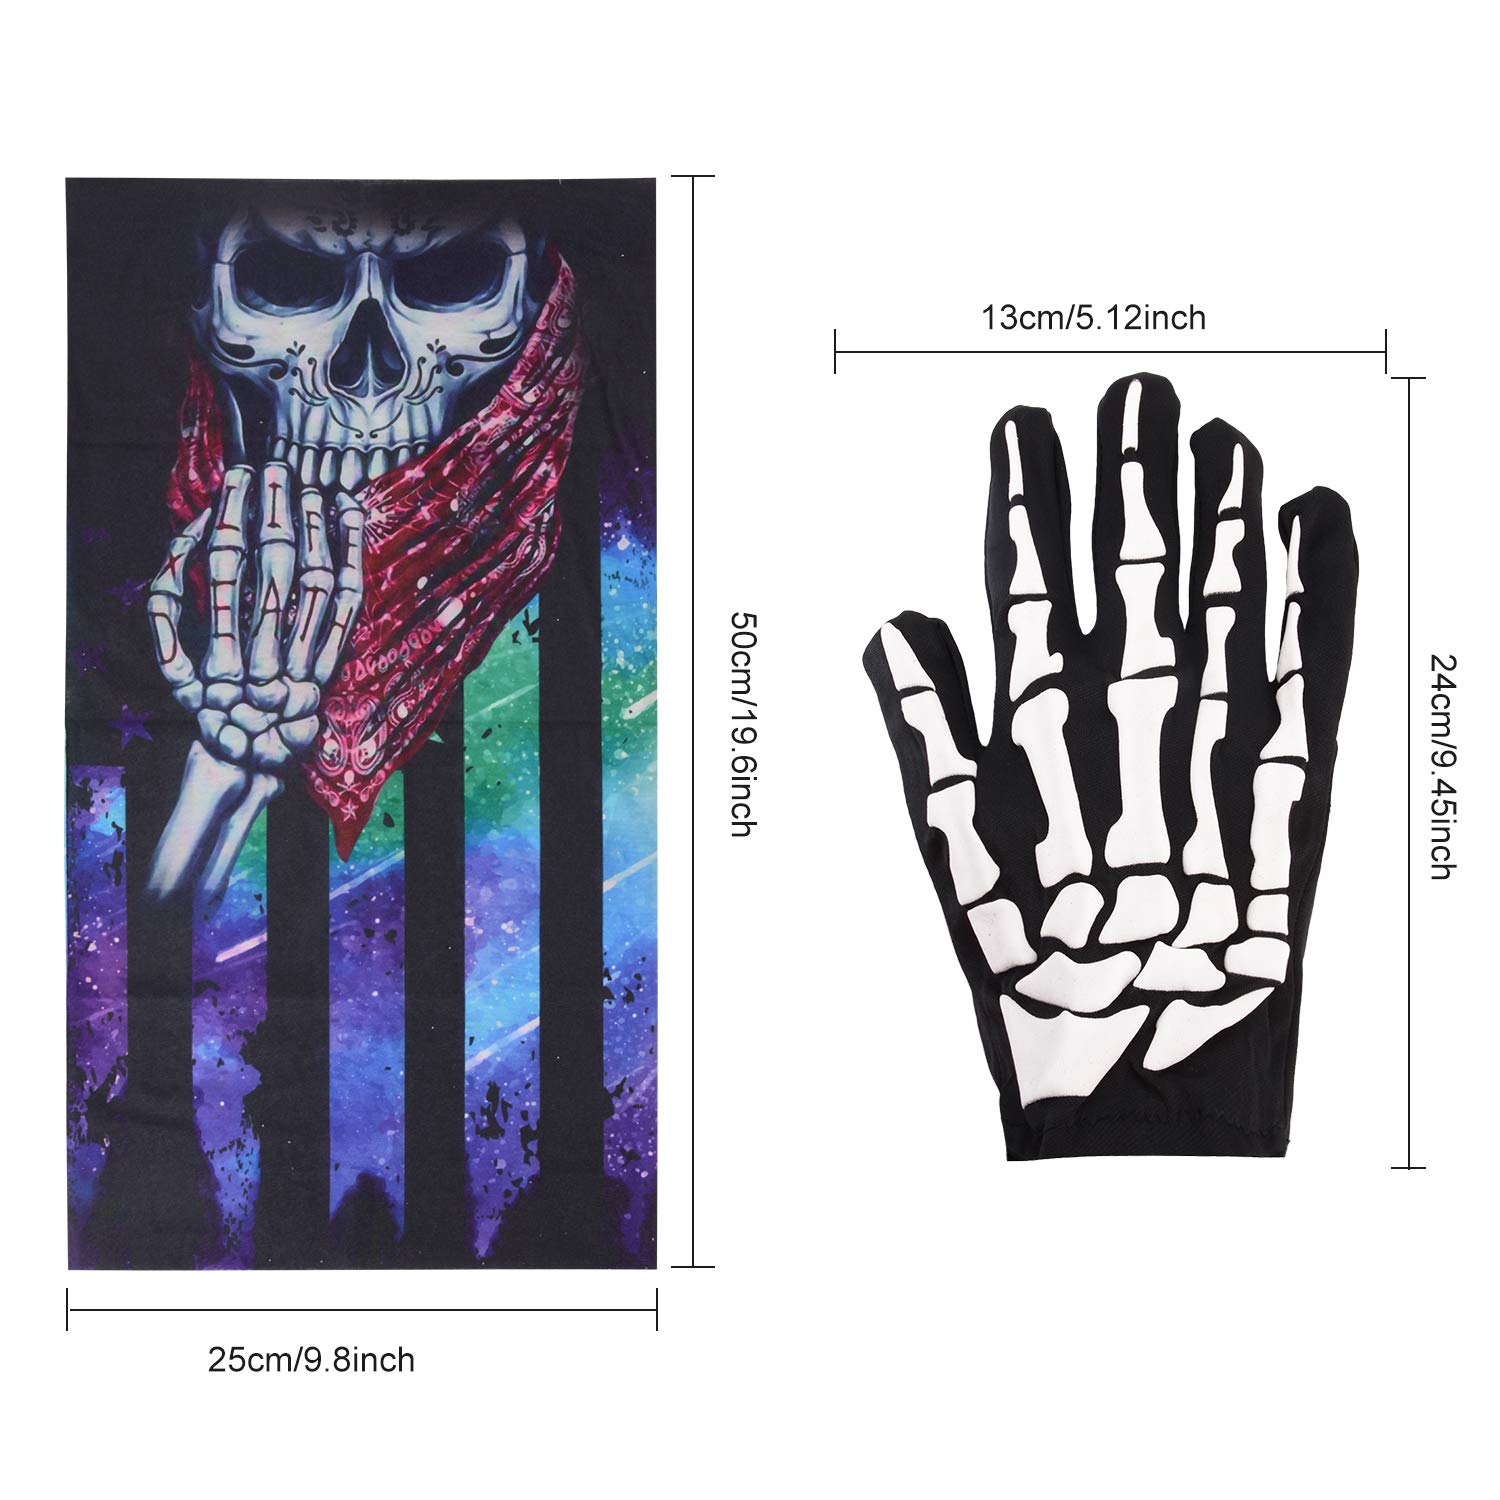 ZOYLINK 2 Pares de Guantes de Halloween Scary Skeleton Novelty Gloves con 2 mascarillas de Ciclismo